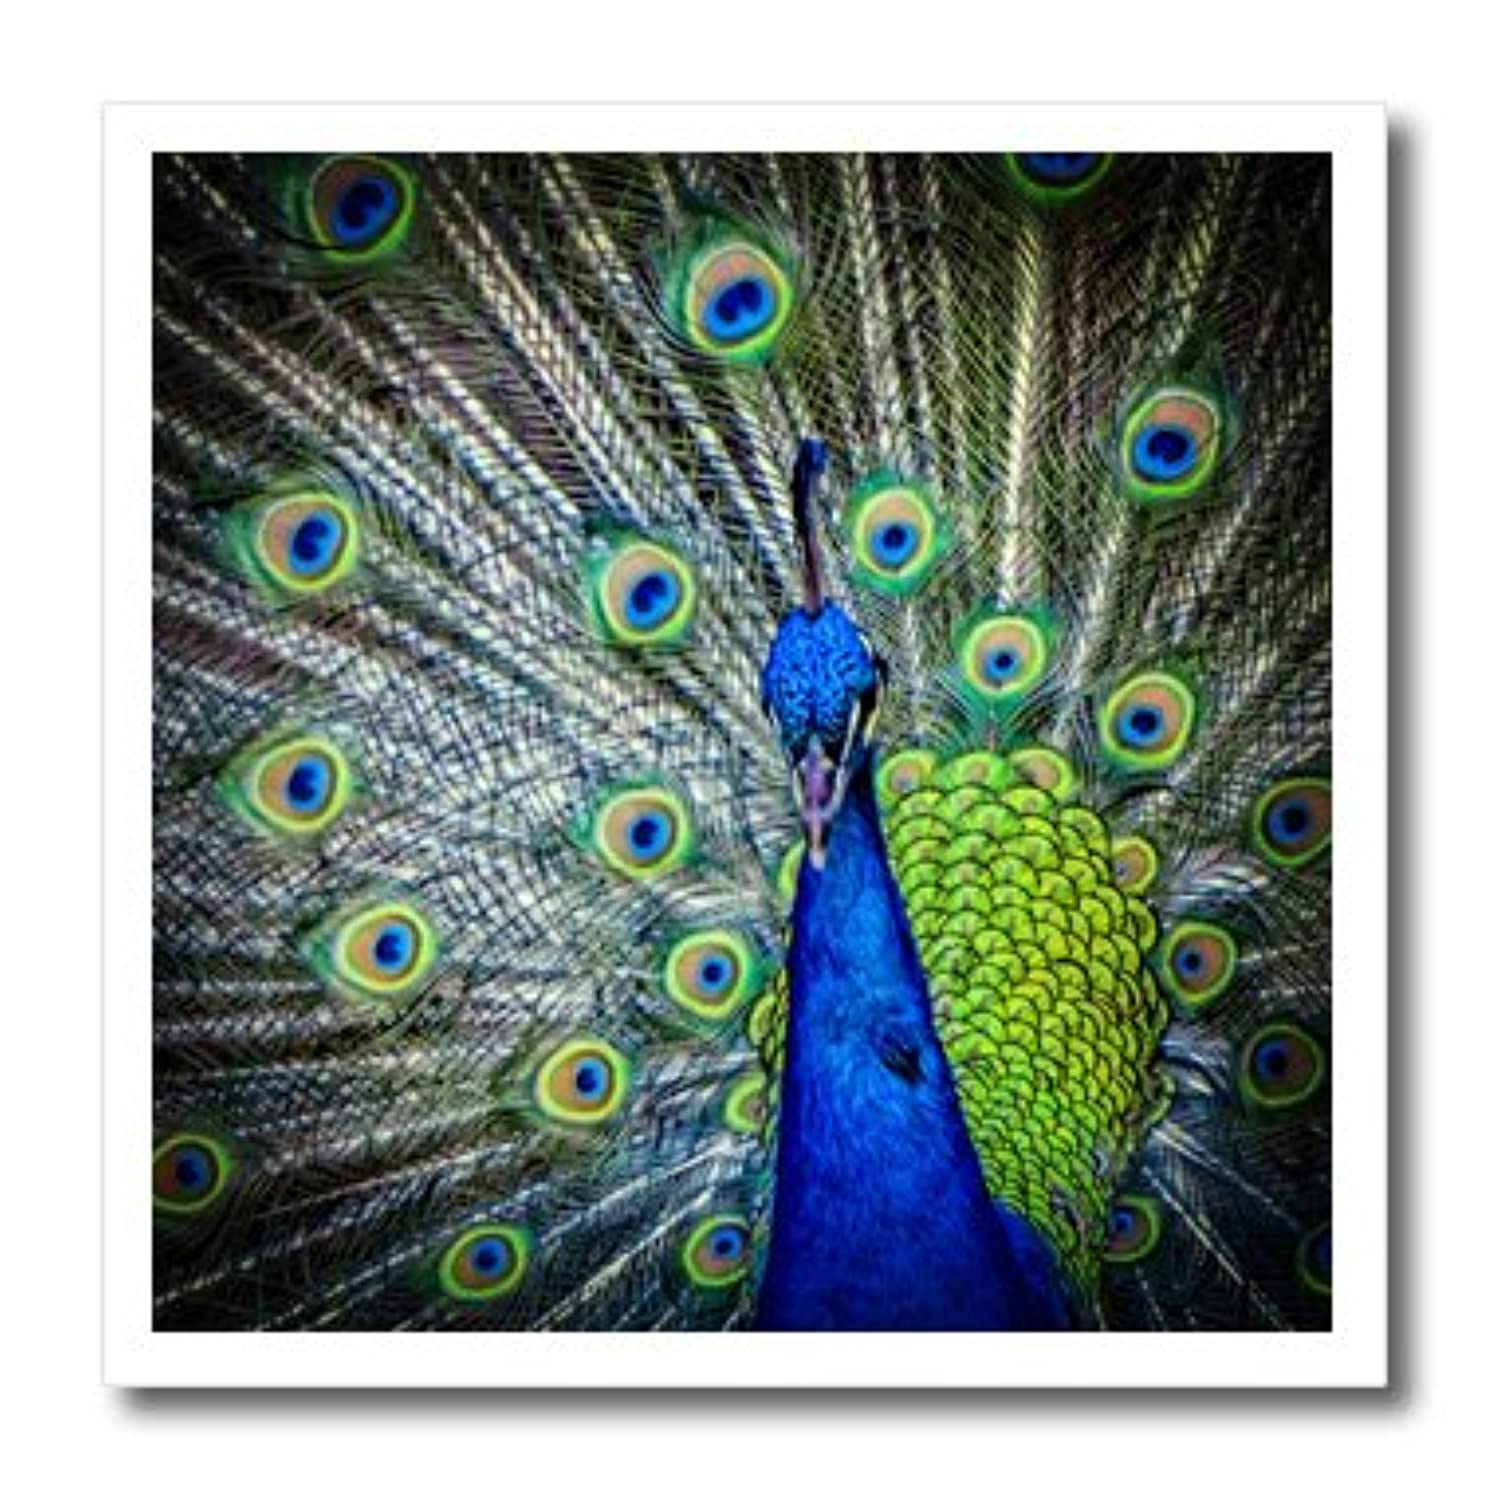 3dRose ht_127497_1 Magnificent Peacock Iron on Heat Transfer, 8 by 8-Inch, for White Material